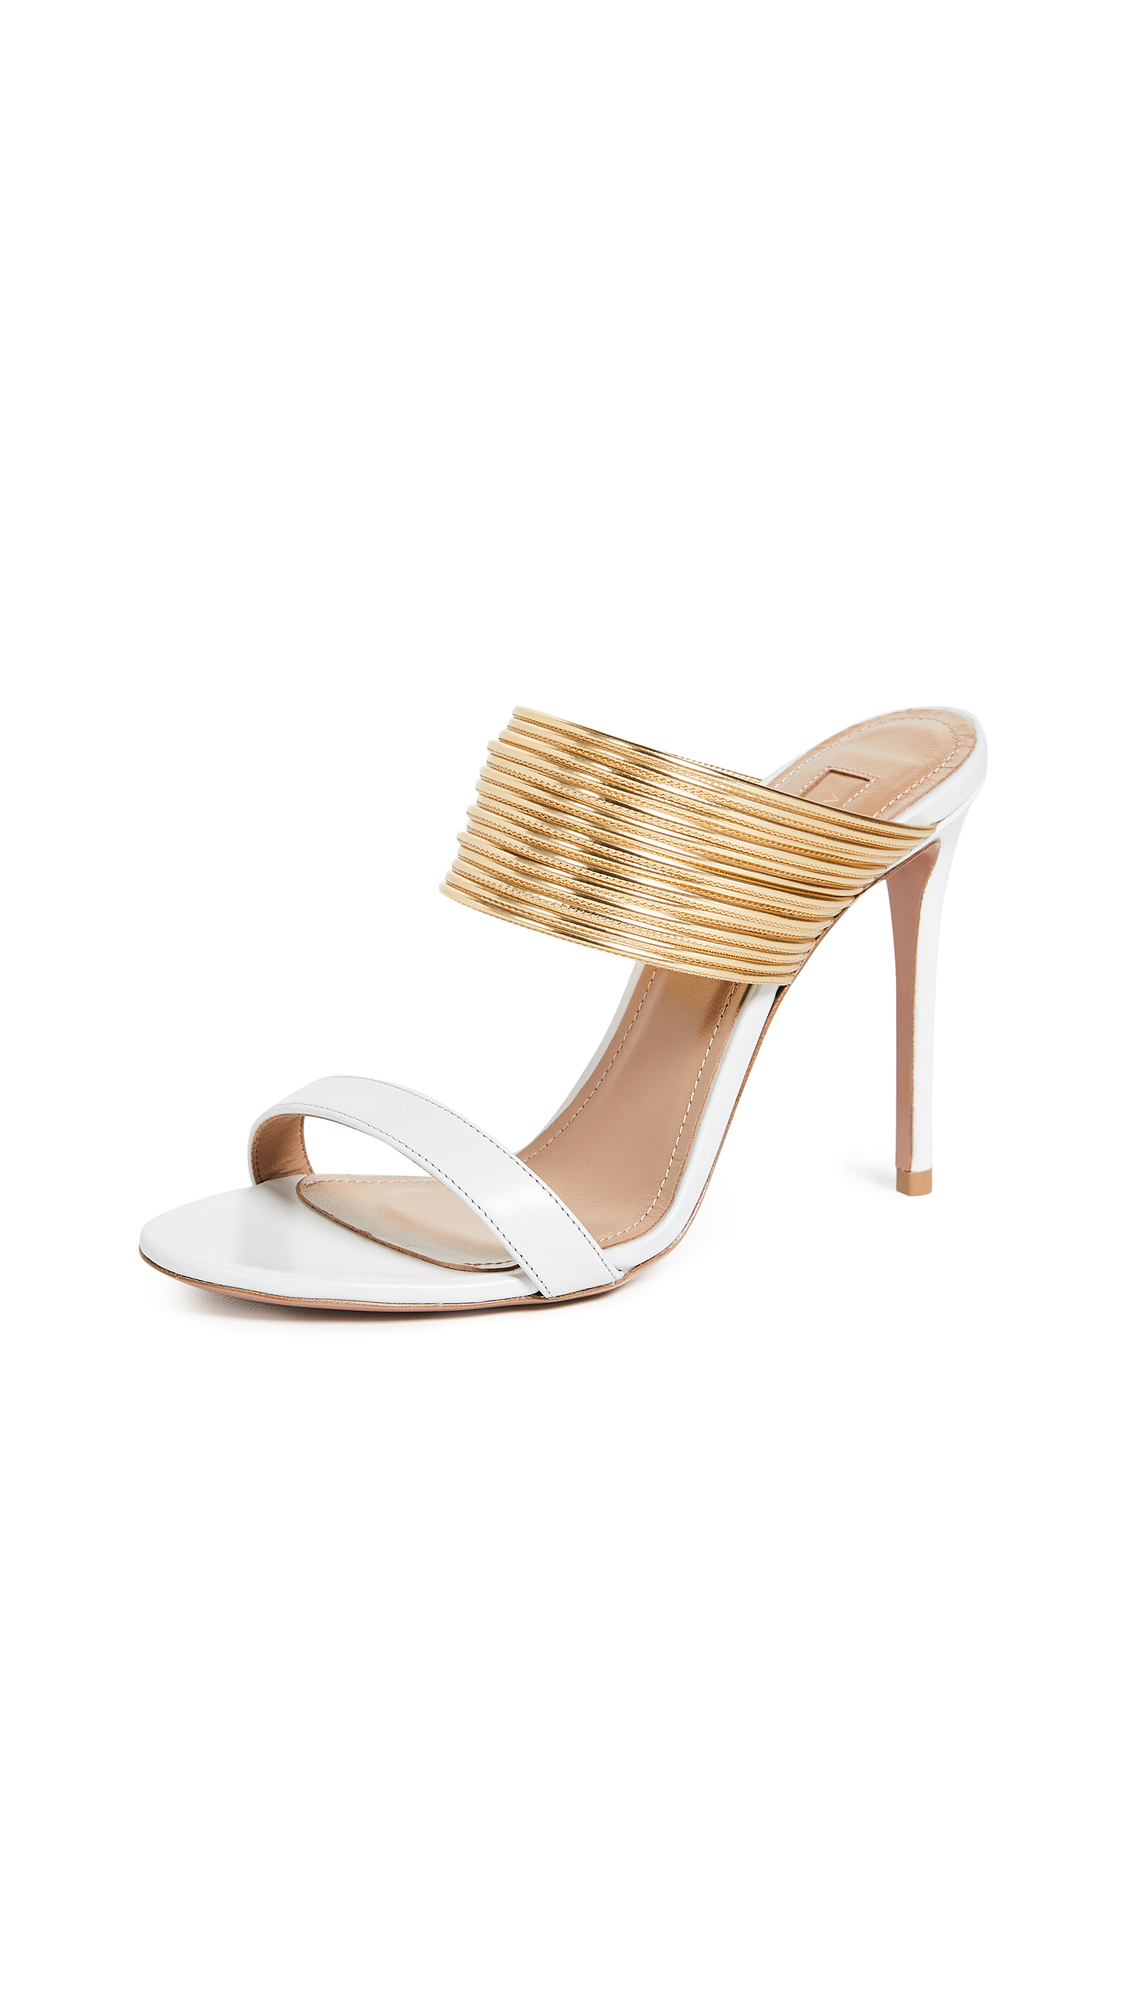 Aquazzura Rendez Vous 105 Sandals - White/Gold